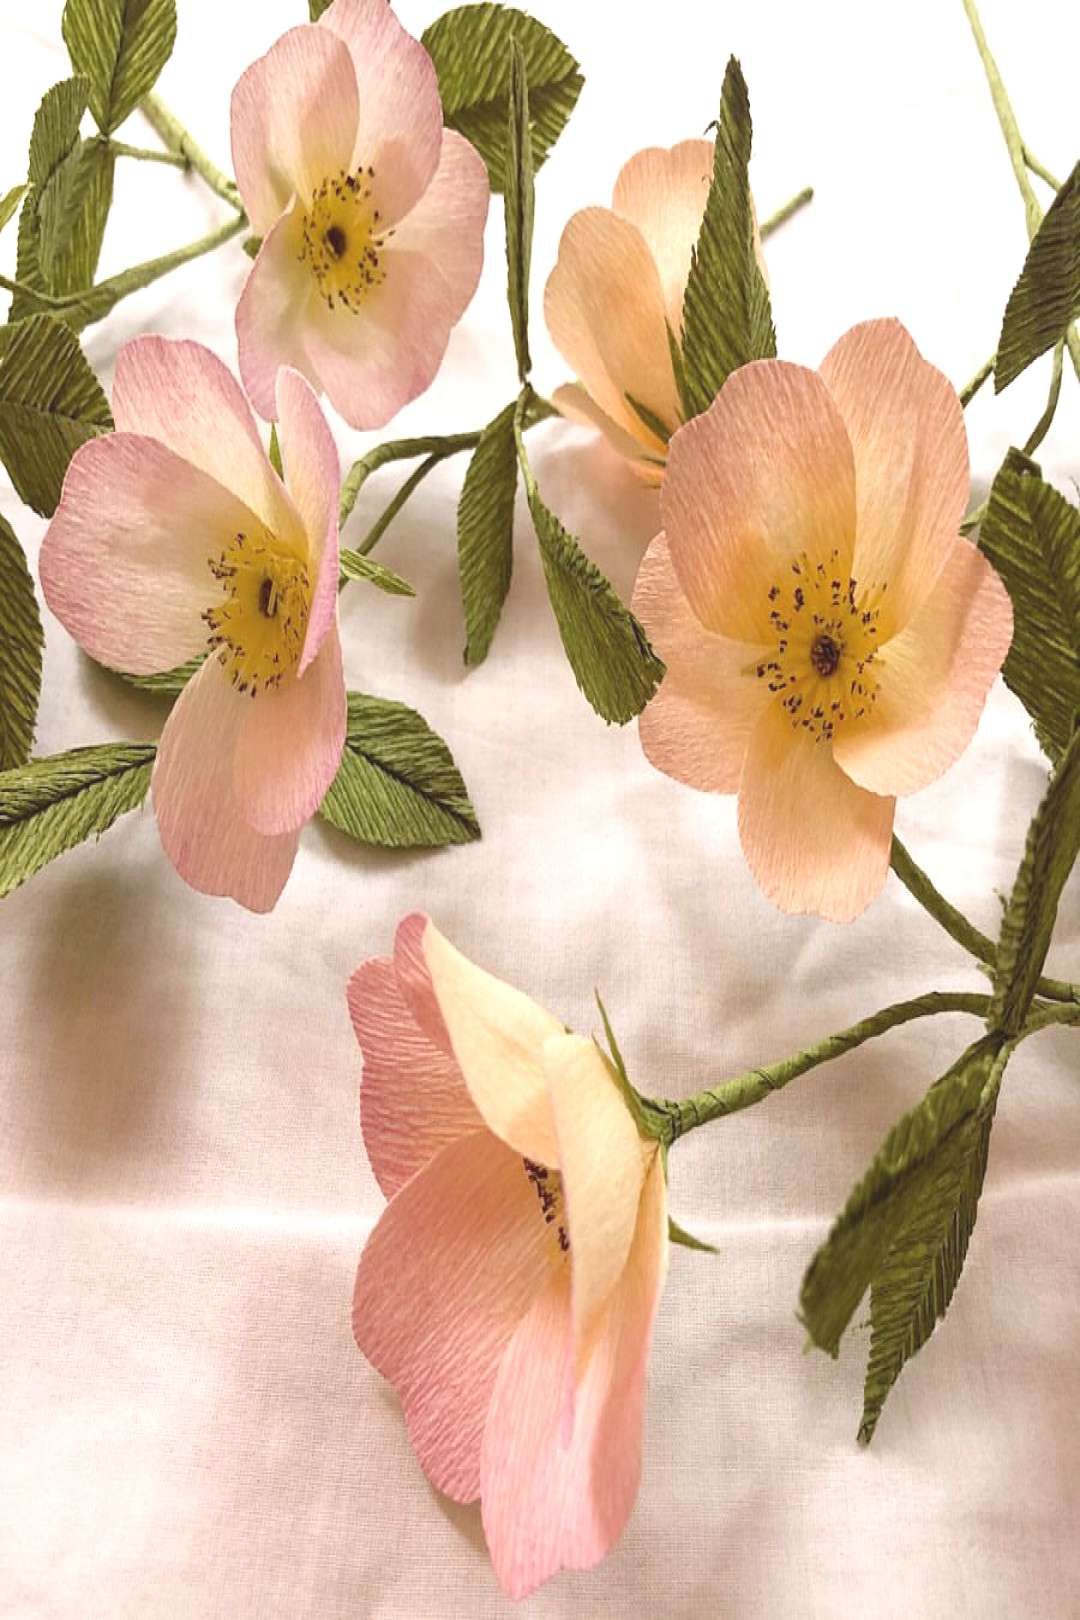 Help Ive gone a little wild rose crazy! . They tell me, quotgrief i